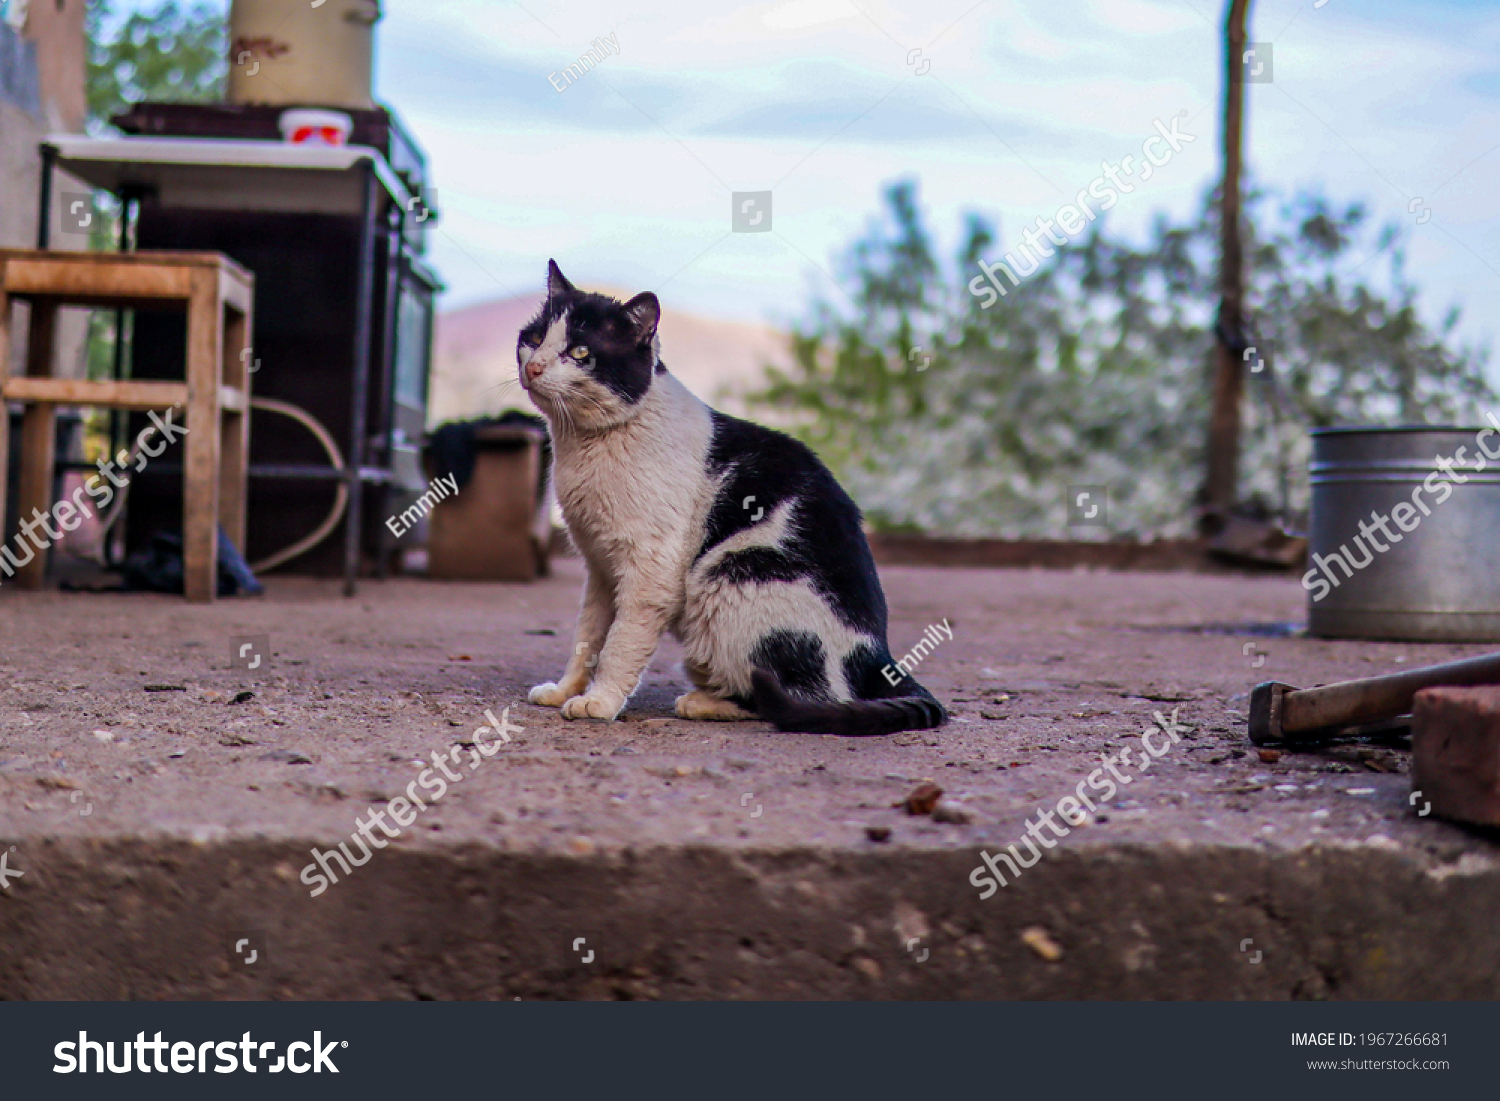 stock-photo-cute-old-black-and-white-cat